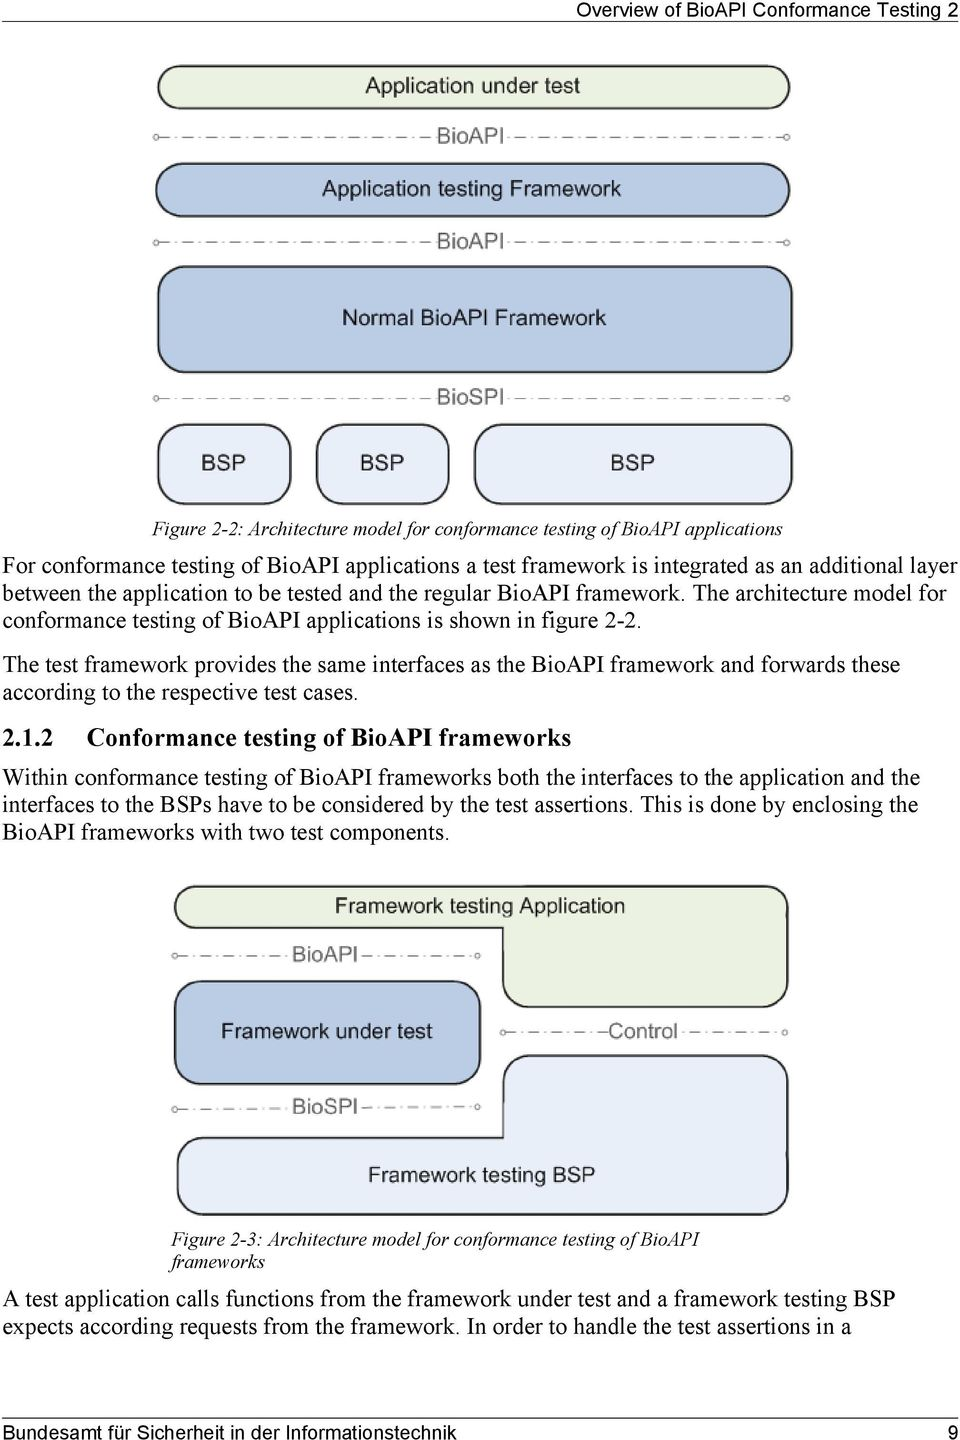 The test framework provides the same interfaces as the BioAPI framework and forwards these according to the respective test cases. 2.1.